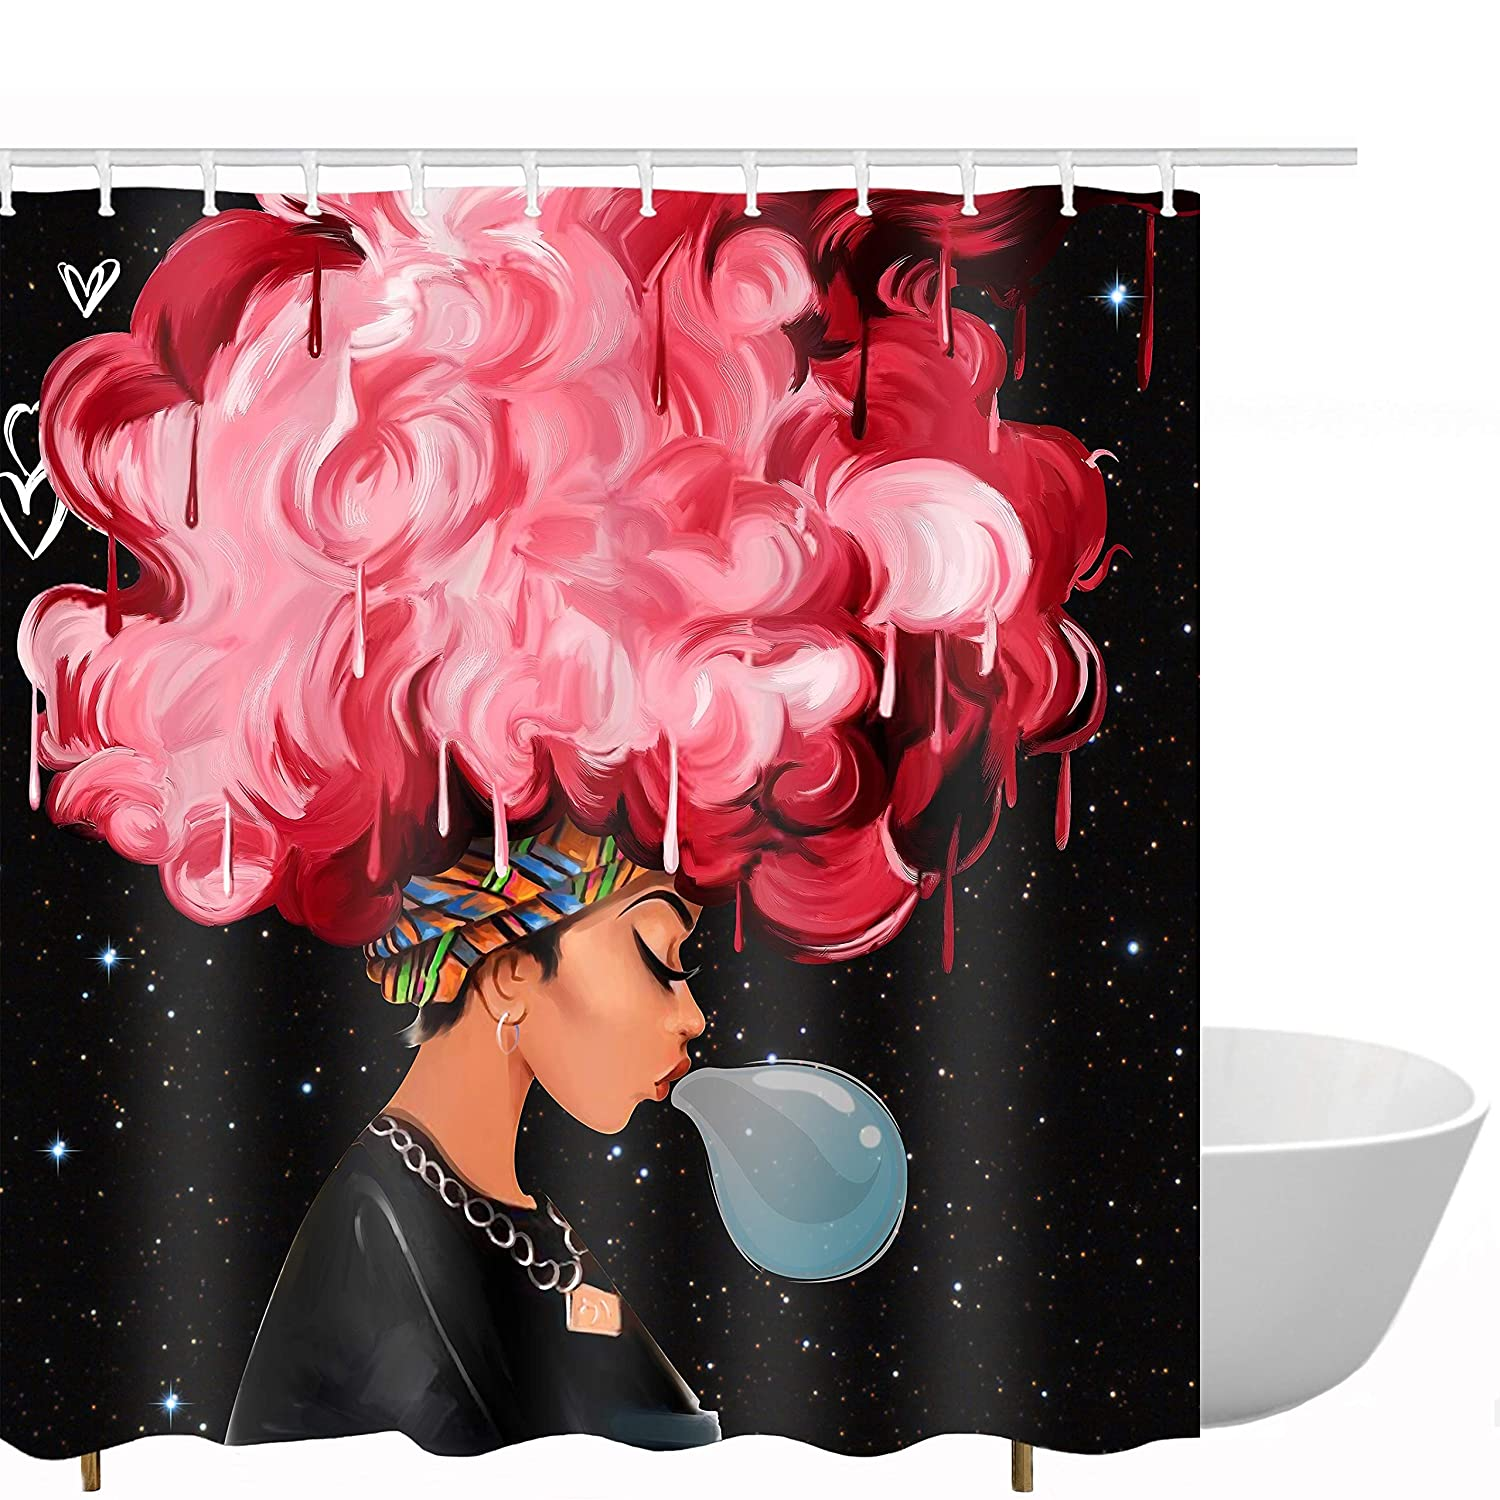 Get Orange Traditional African Black Women Blow Bubbles with Red Hair Afro Hairstyle Watercolor Portrait Picture Print Waterproof Mildew Resistant Fabric Polyester Shower Curtain 72X72 inch